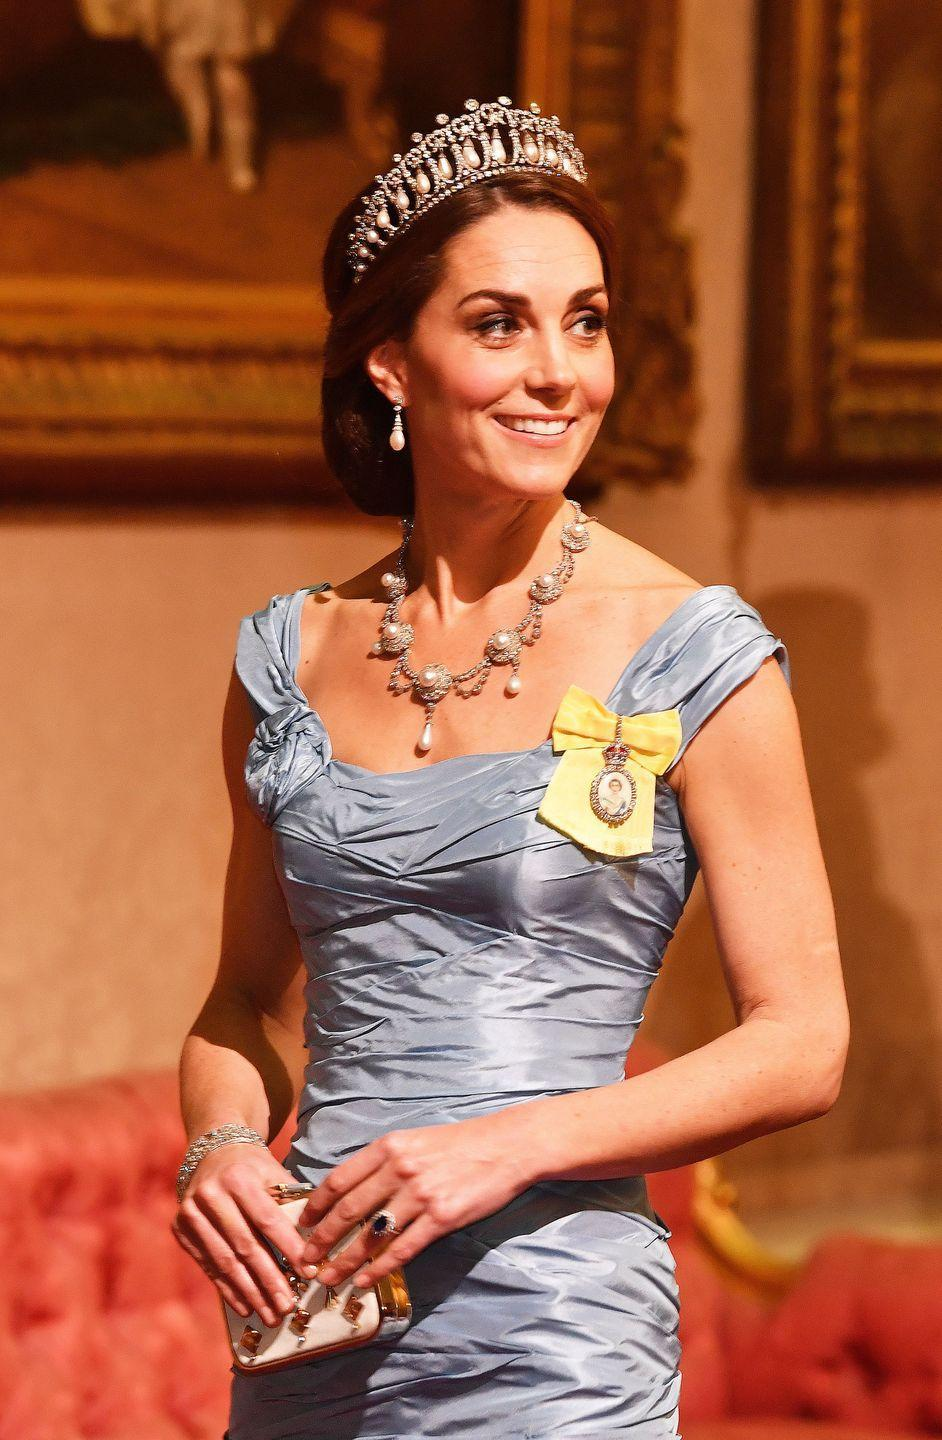 "<p>The Duchess stepped out in full regal attire for a state banquet at Buckingham Palace, wearing one of her <a href=""https://www.townandcountrymag.com/society/tradition/g30186903/royal-family-buckingham-palace-diplomatic-reception-2019-photos/"" rel=""nofollow noopener"" target=""_blank"" data-ylk=""slk:go-to tiaras"" class=""link rapid-noclick-resp"">go-to tiaras</a>, the Lover's Knot. She looks as ready as ever for her future role as queen consort.</p>"